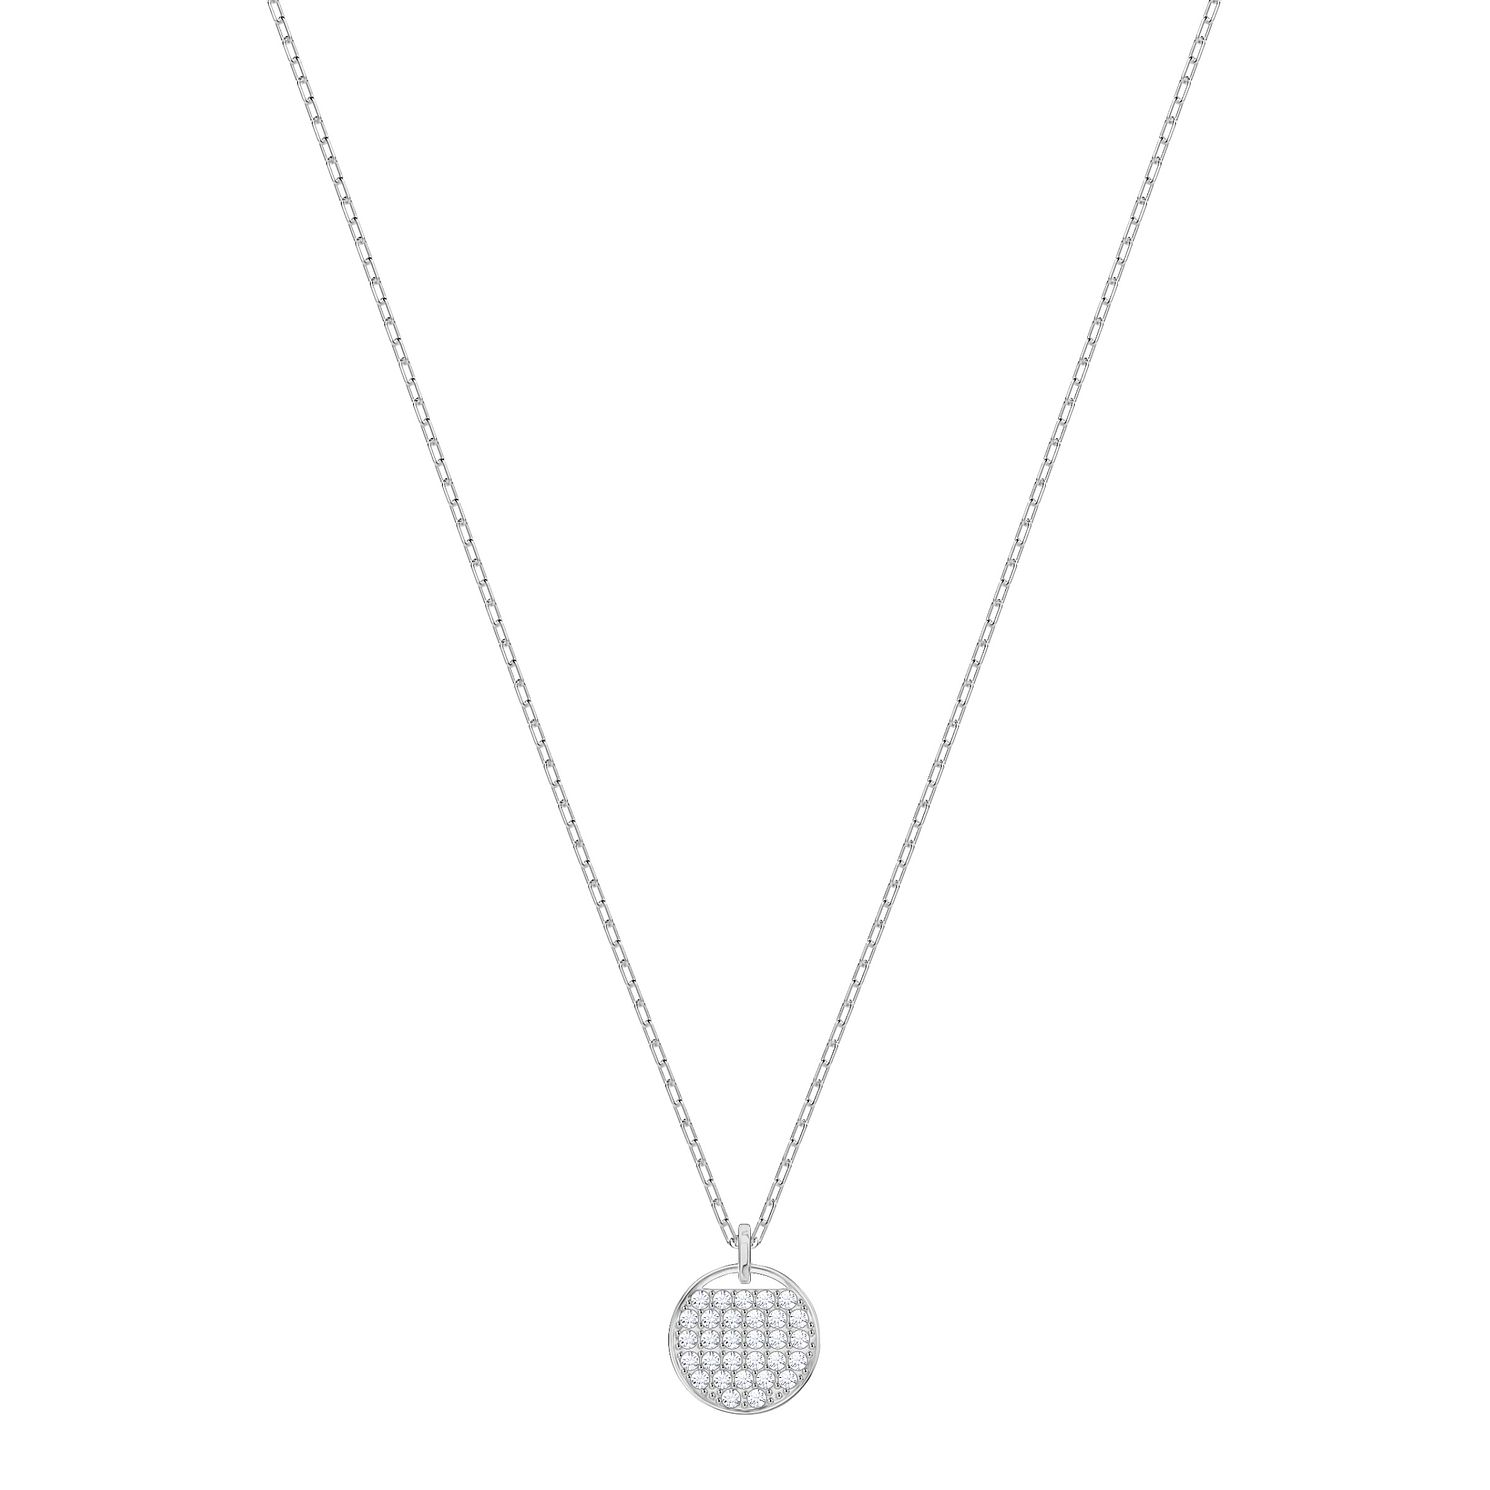 Swarovski Ladies' Rhodium Plated Ginger Pendant Necklace - Product number 3942279